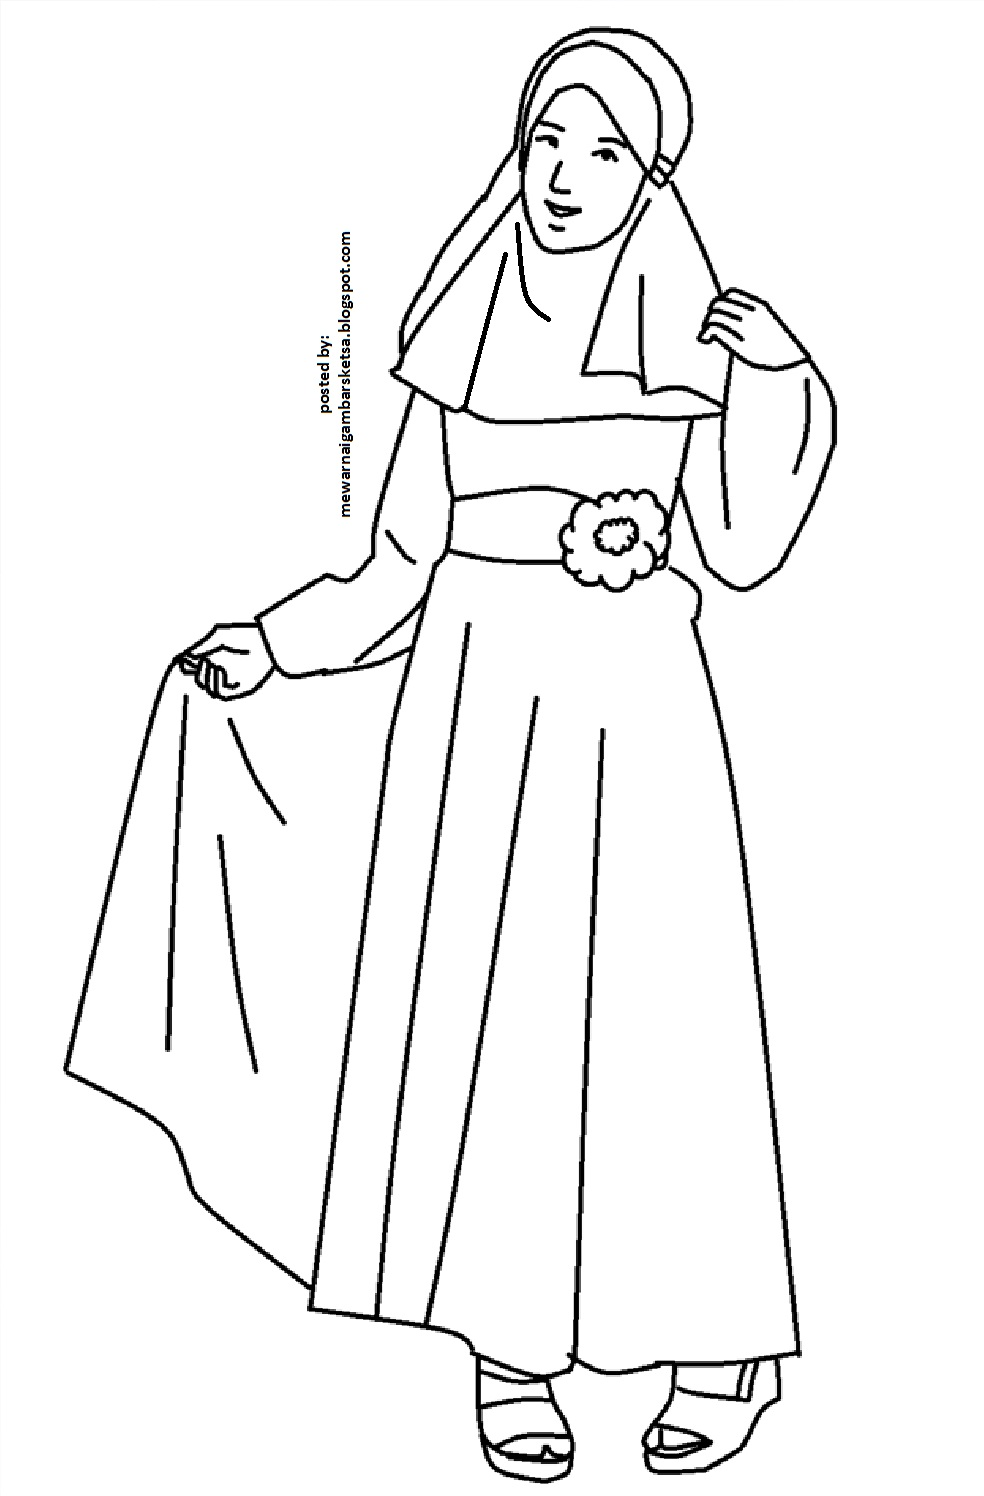 Six pillars of islam coloring coloring pages for Six pillars of character coloring pages